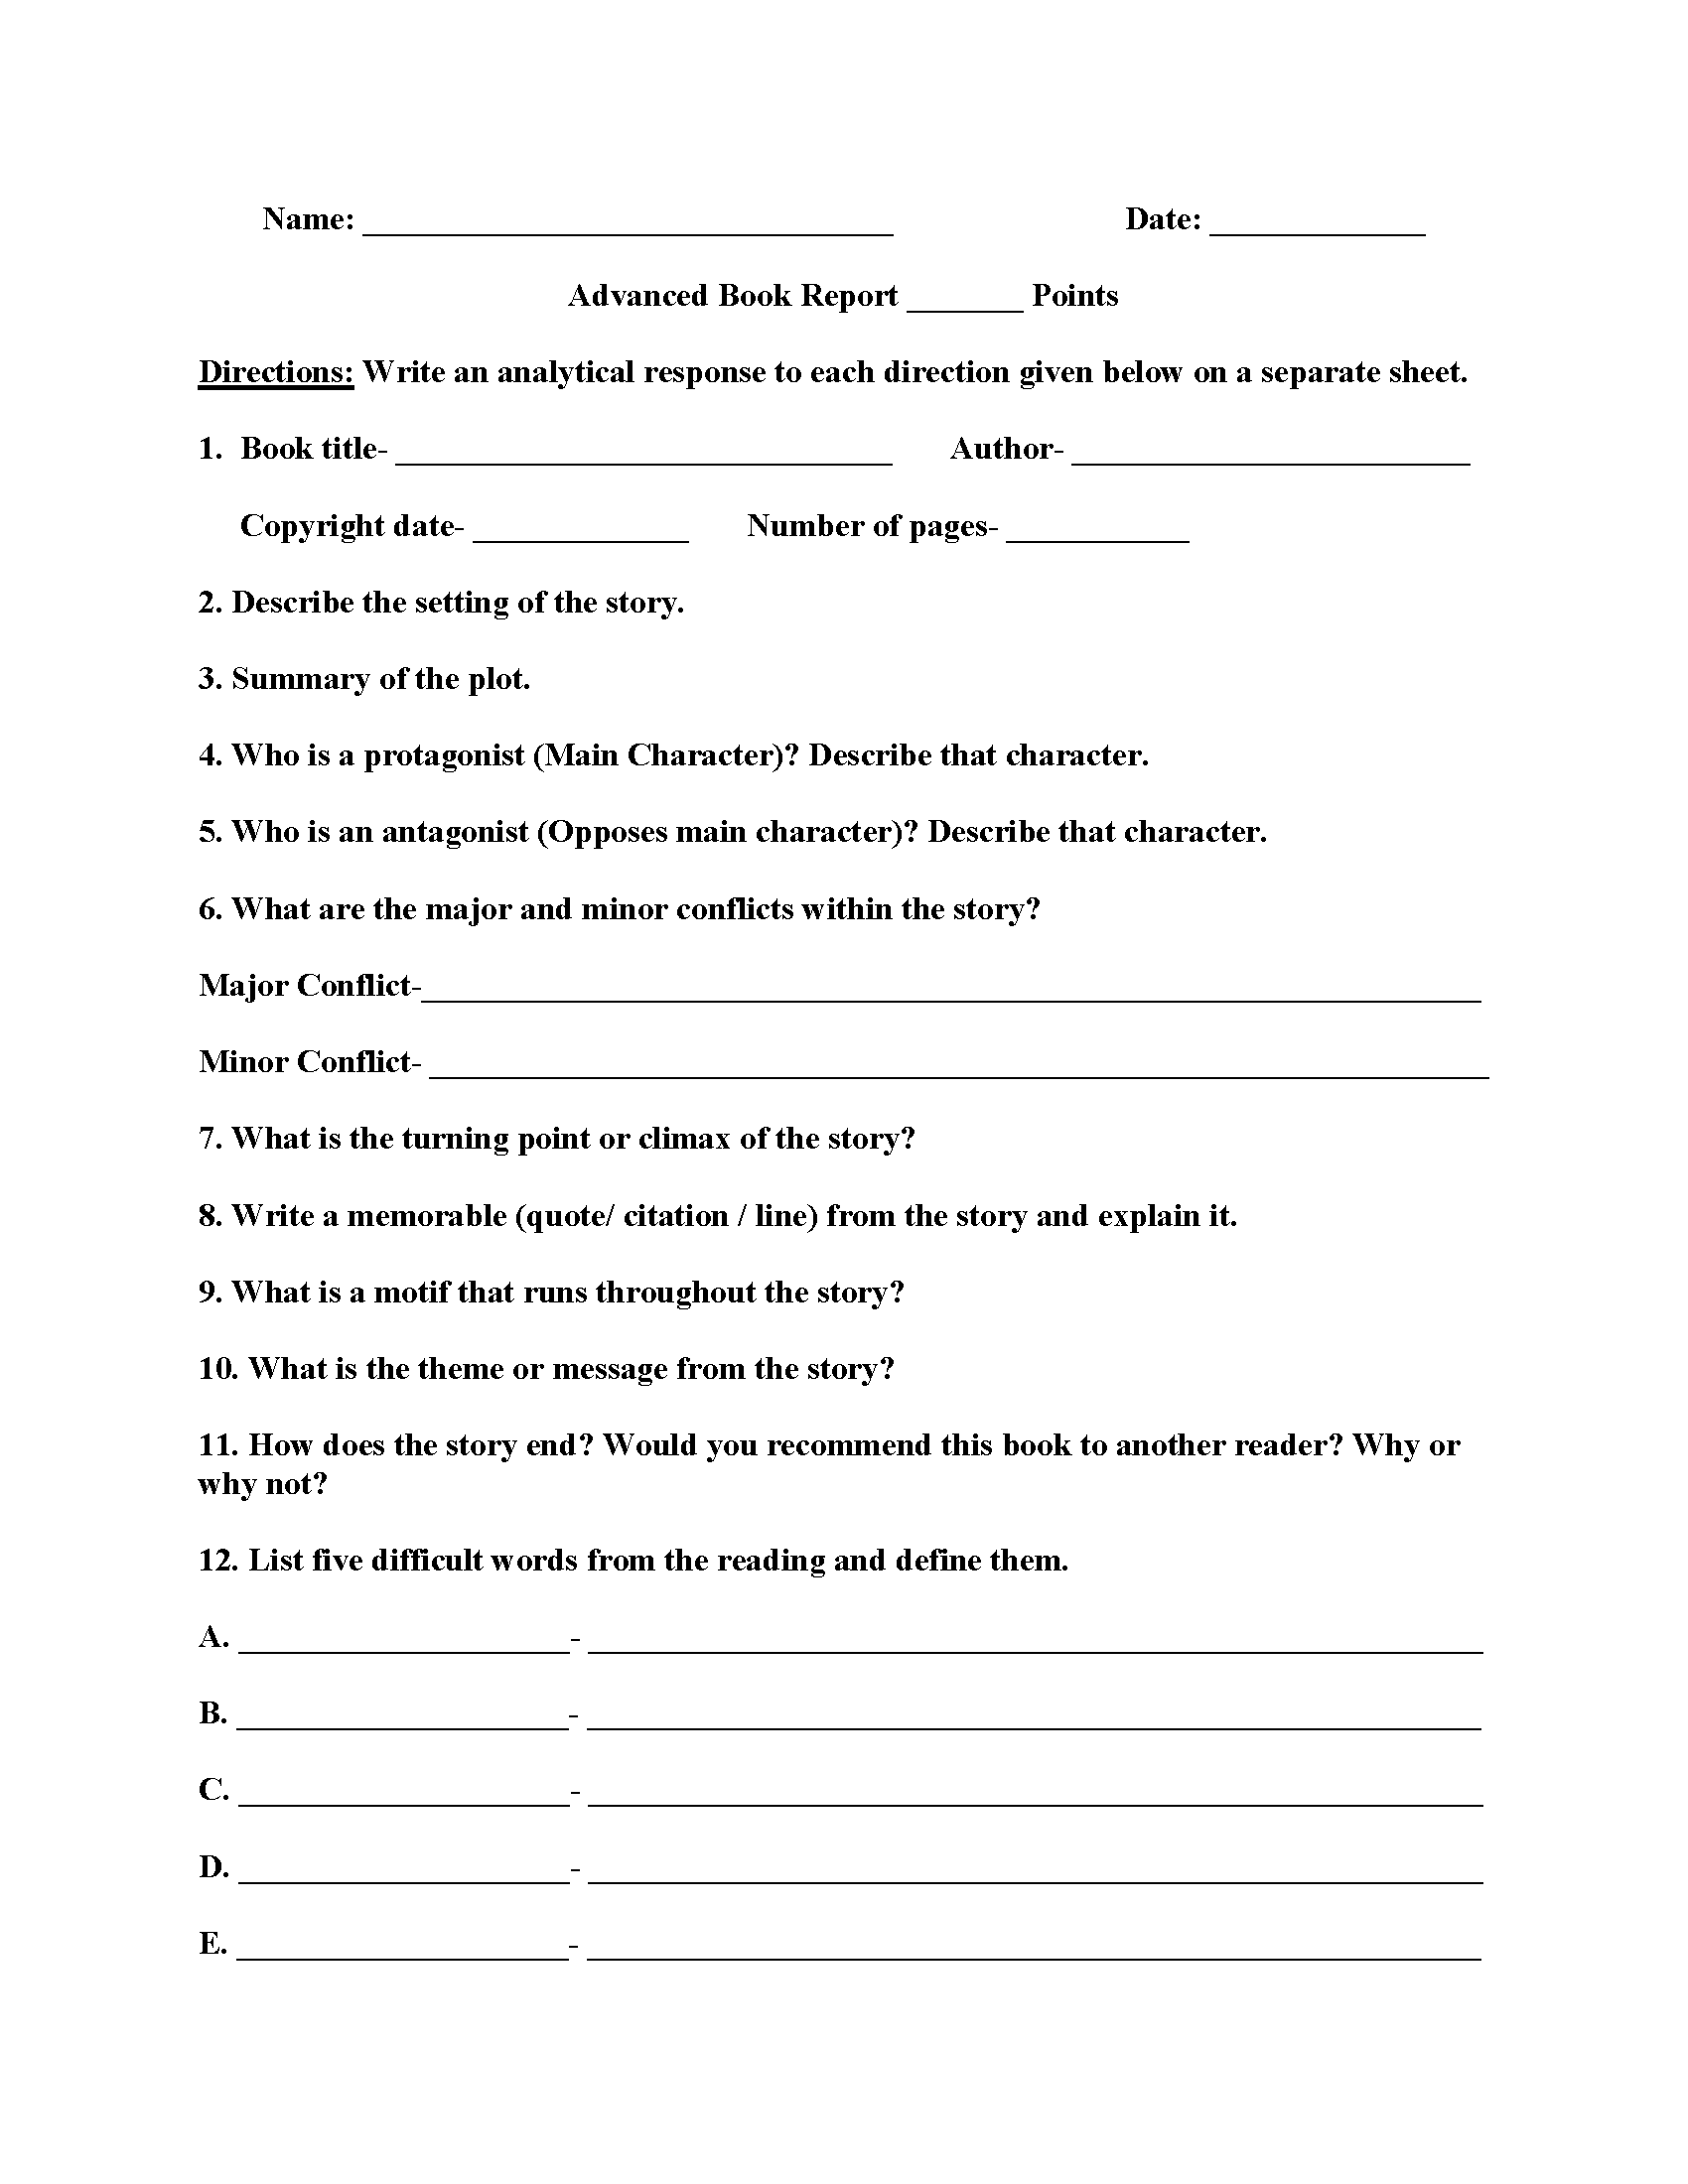 worksheets for writing a book report Use the following topic outline to write a descriptive, organized book report in paragraph form use supportive, detailed examples from the book give specific page references in parentheses if you quote from the book, but avoid excessive quotation.